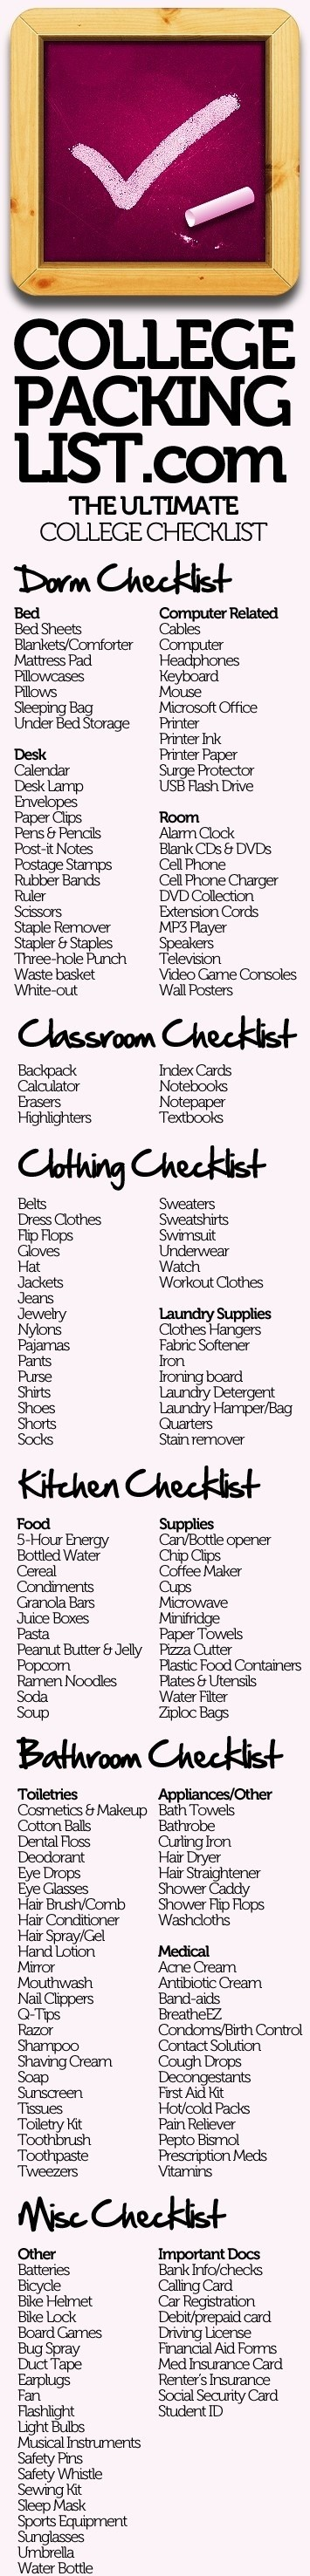 Dorm Checklist! @Laura Jayson Russell Here you go!